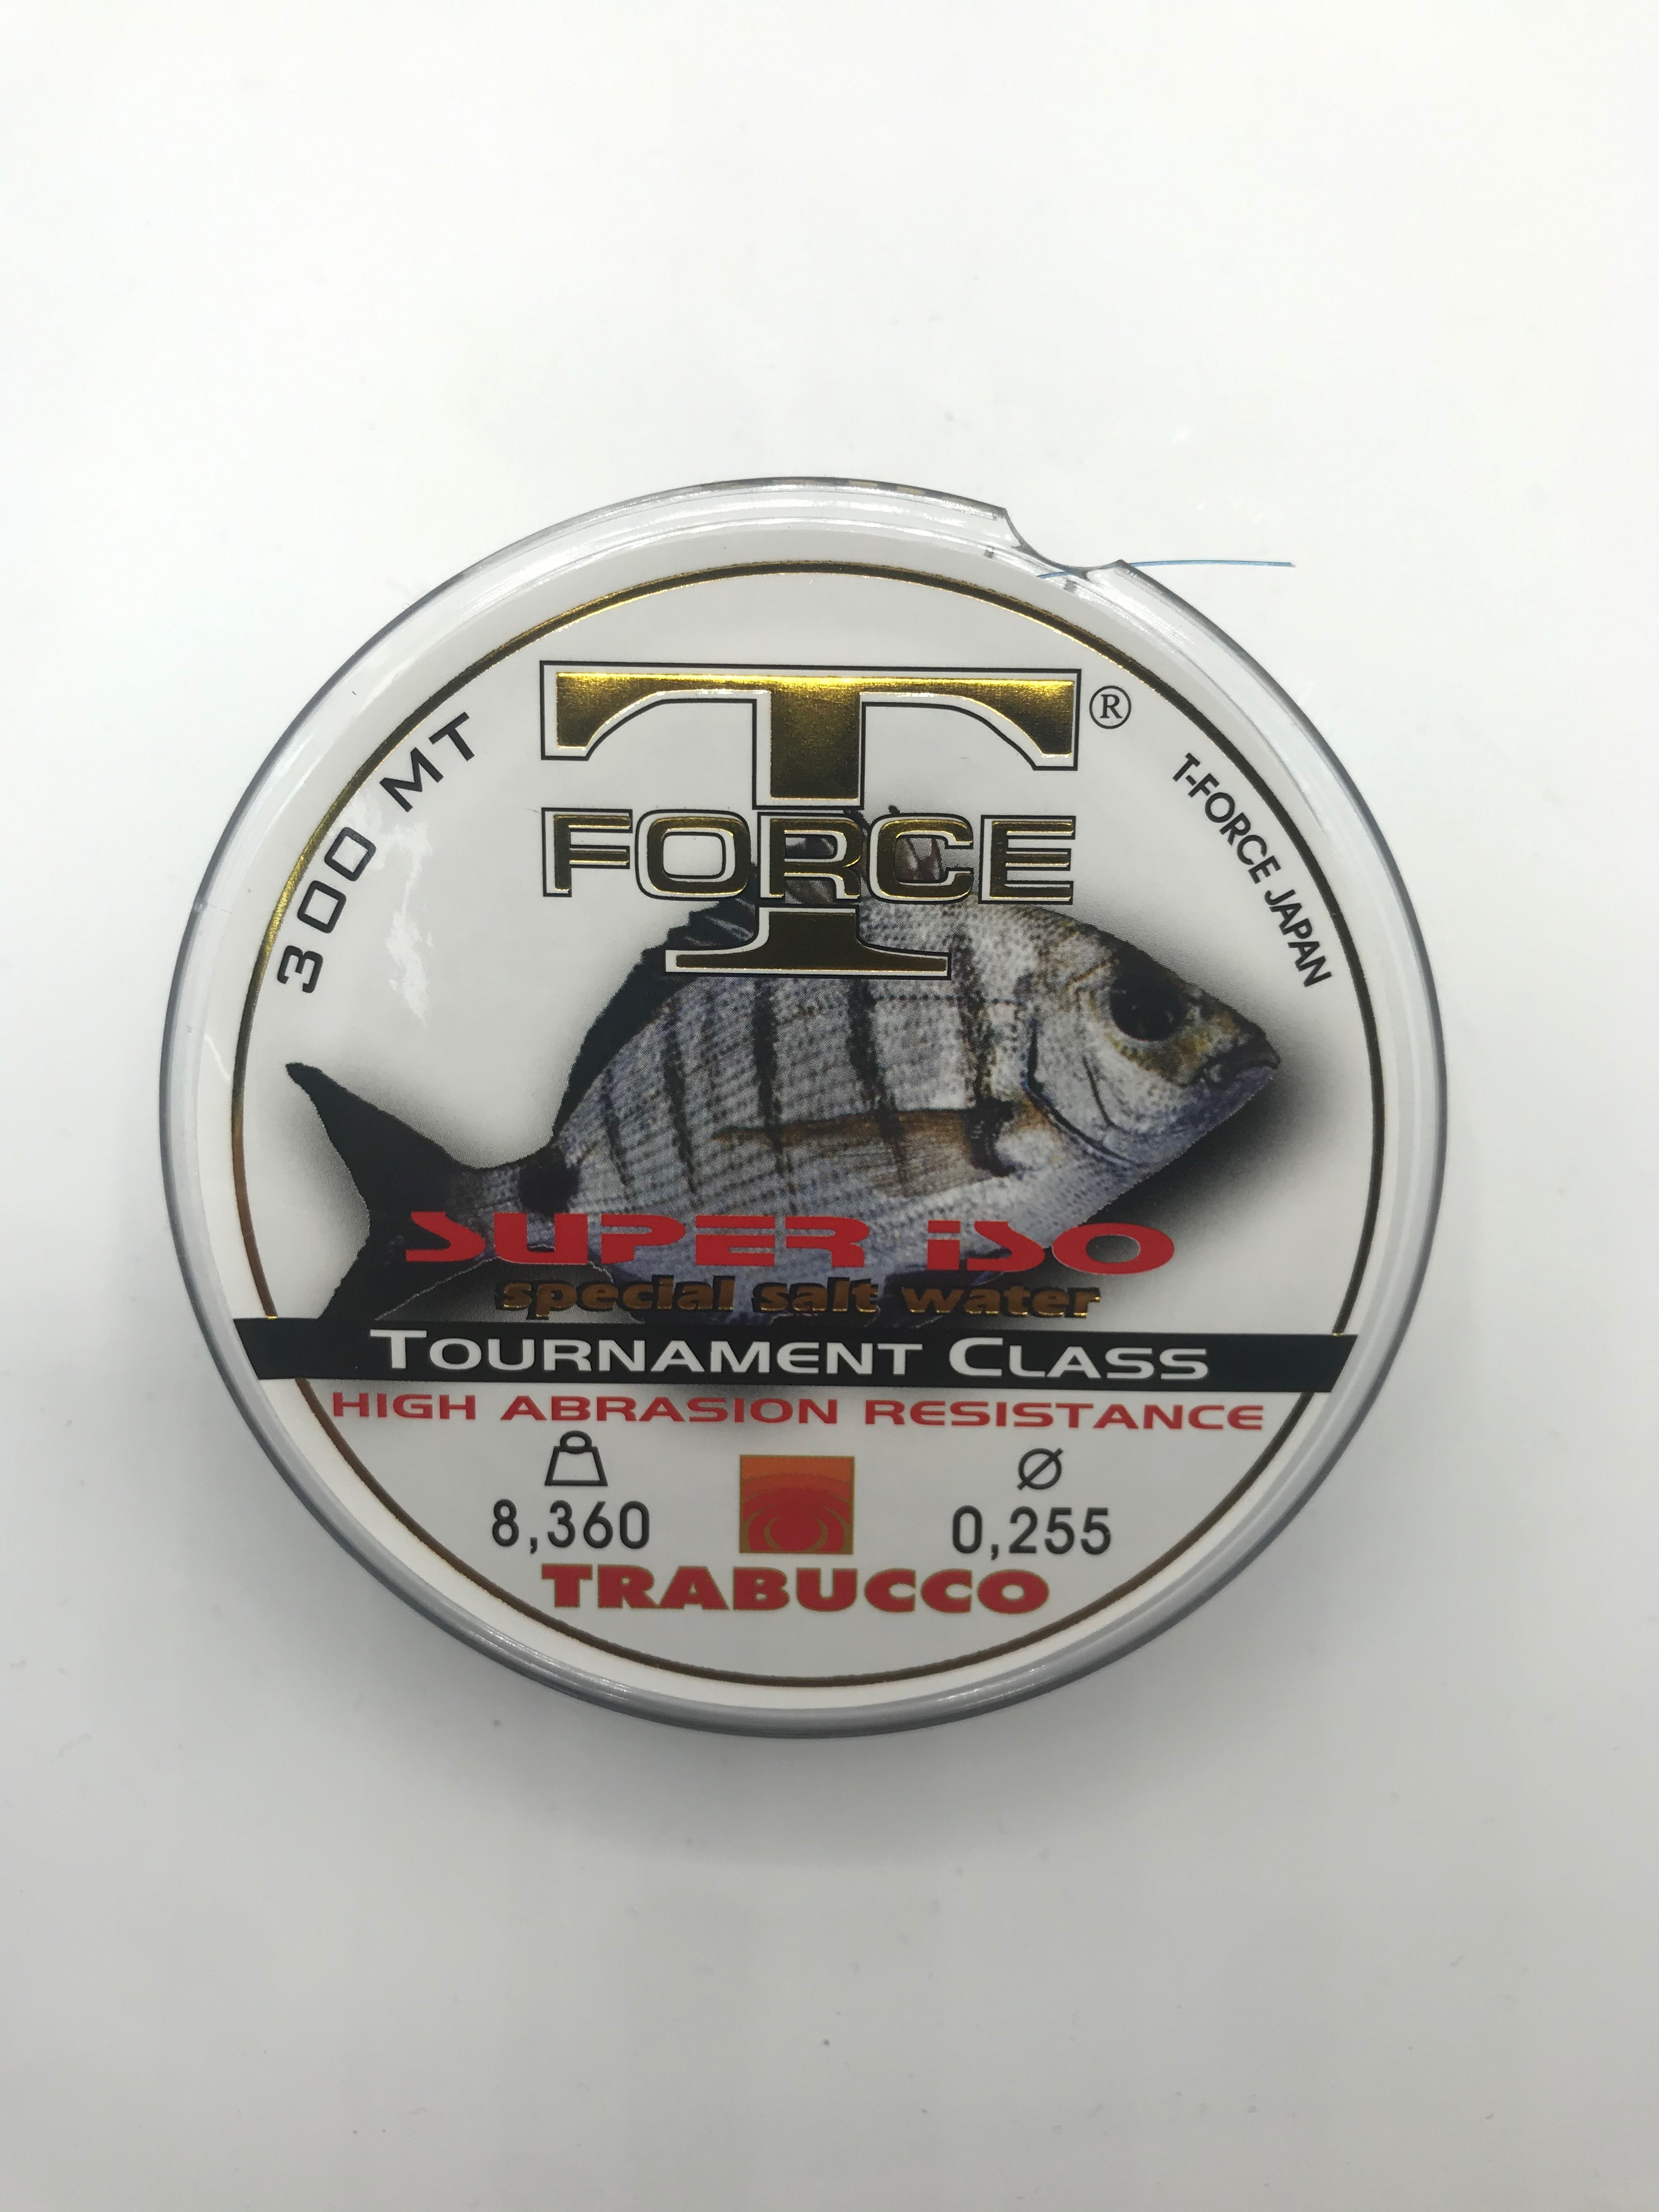 Trabucco - Lenza da pesca t-force tournament class 300m